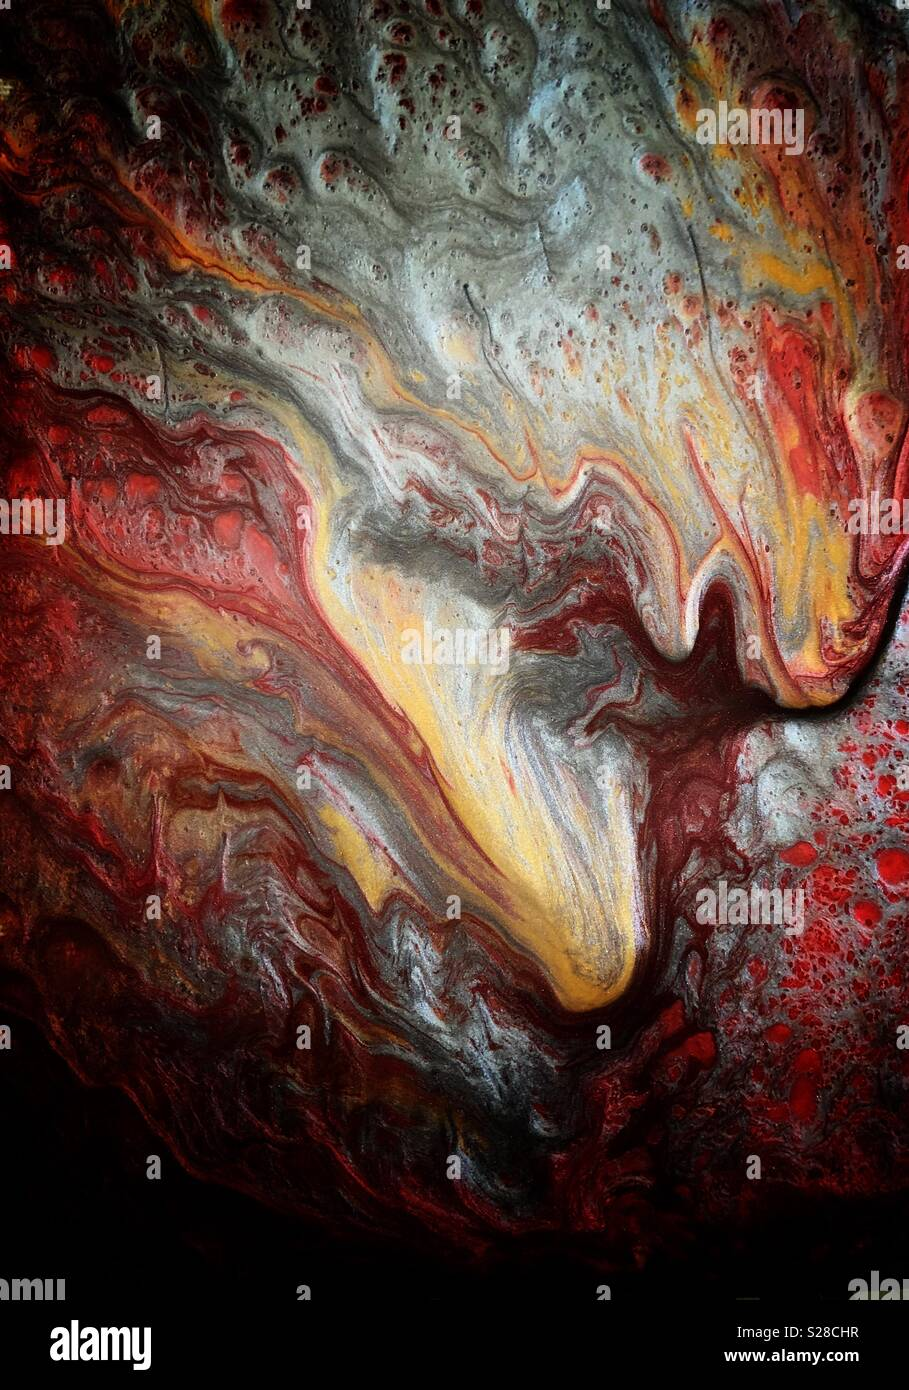 Abstract Wet paint effect on canvas - Stock Image